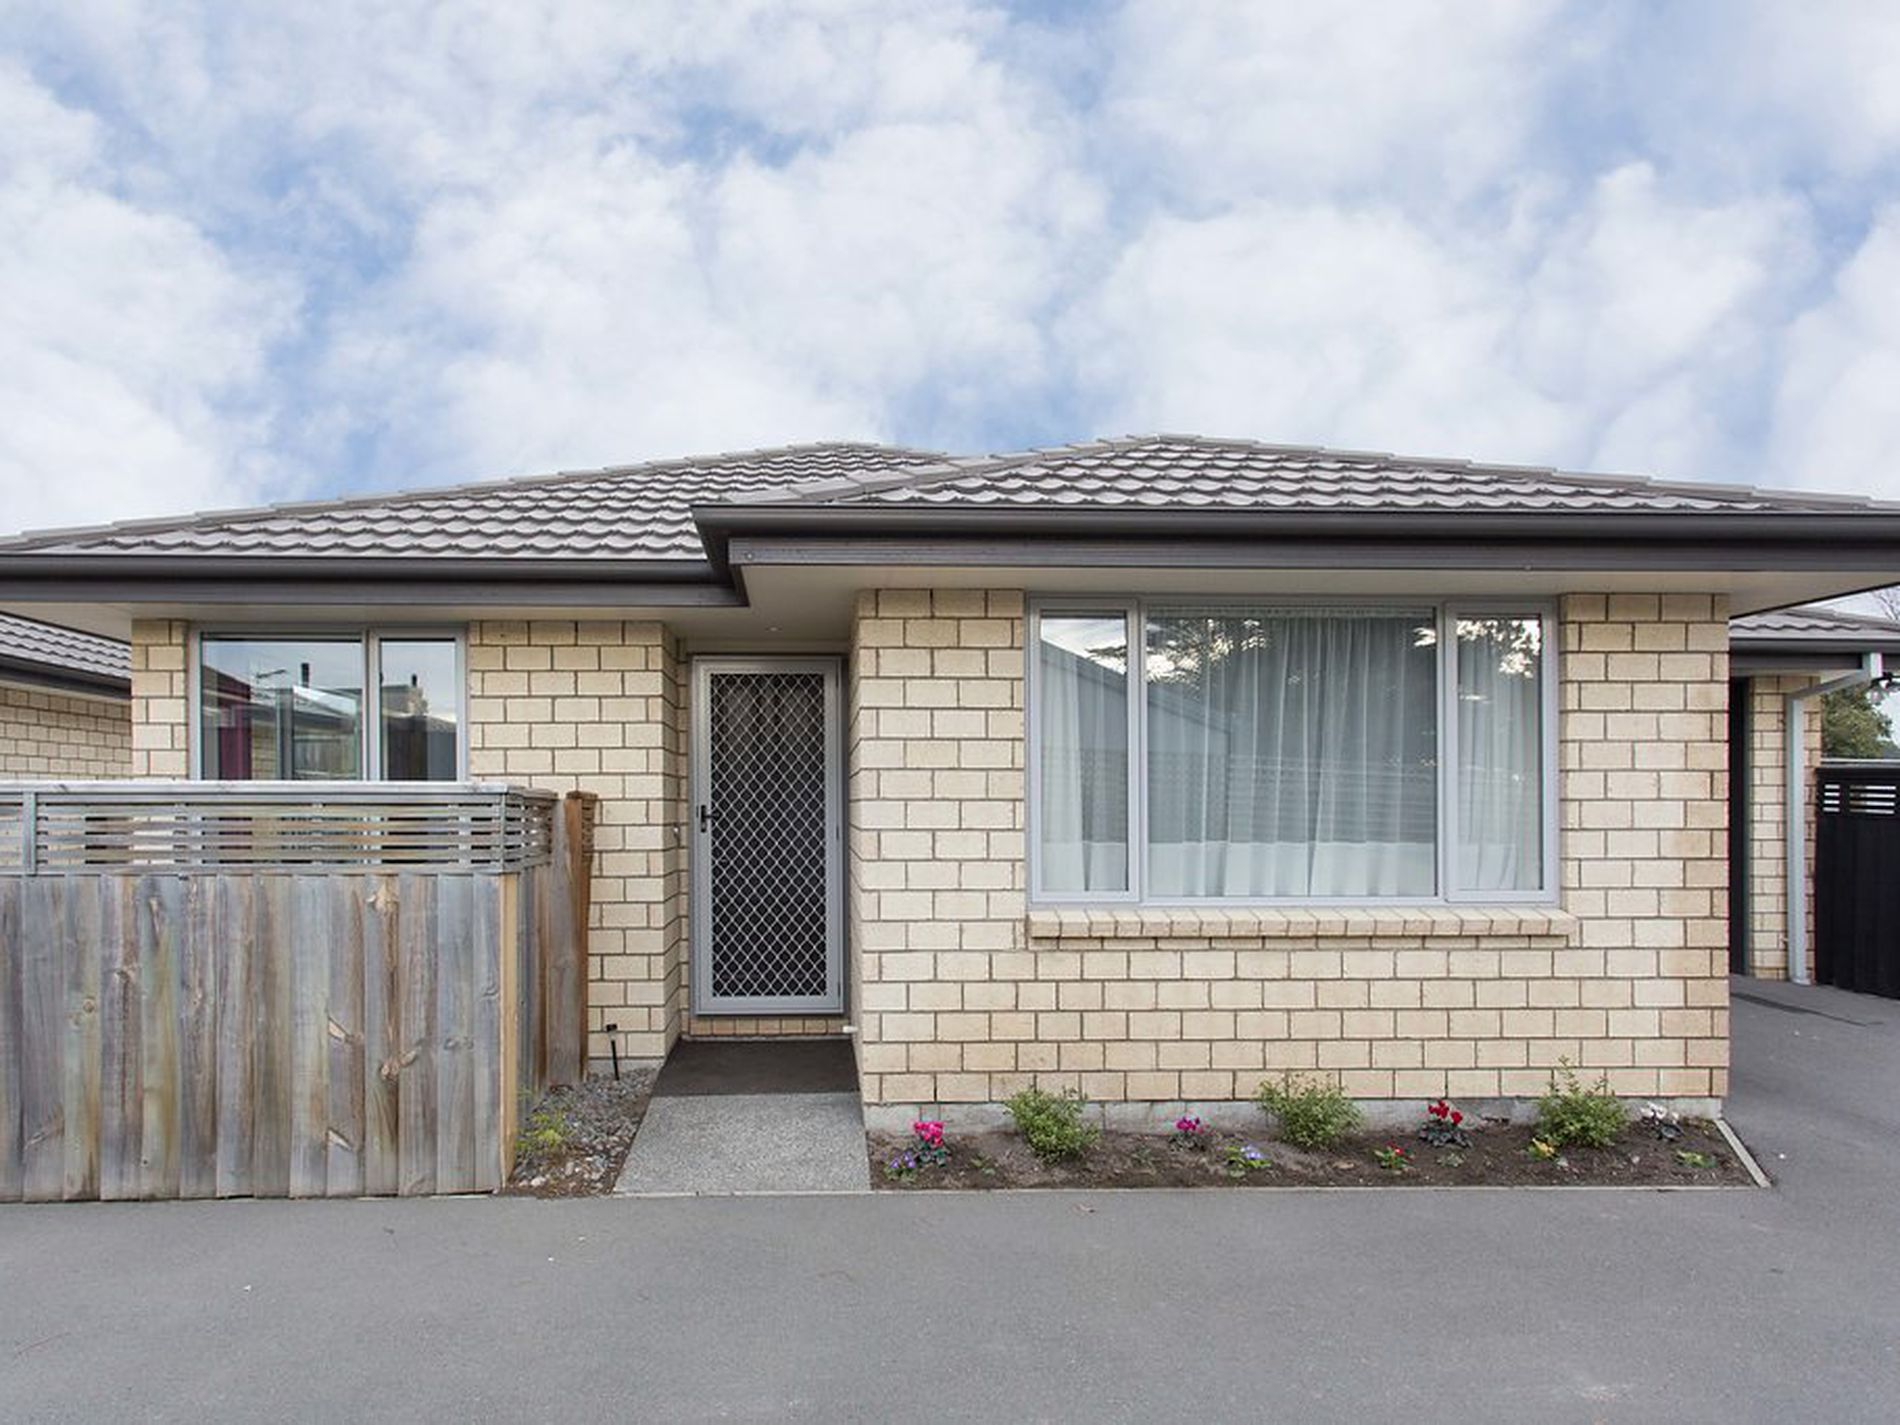 over+60s+units+for+rent+christchurch